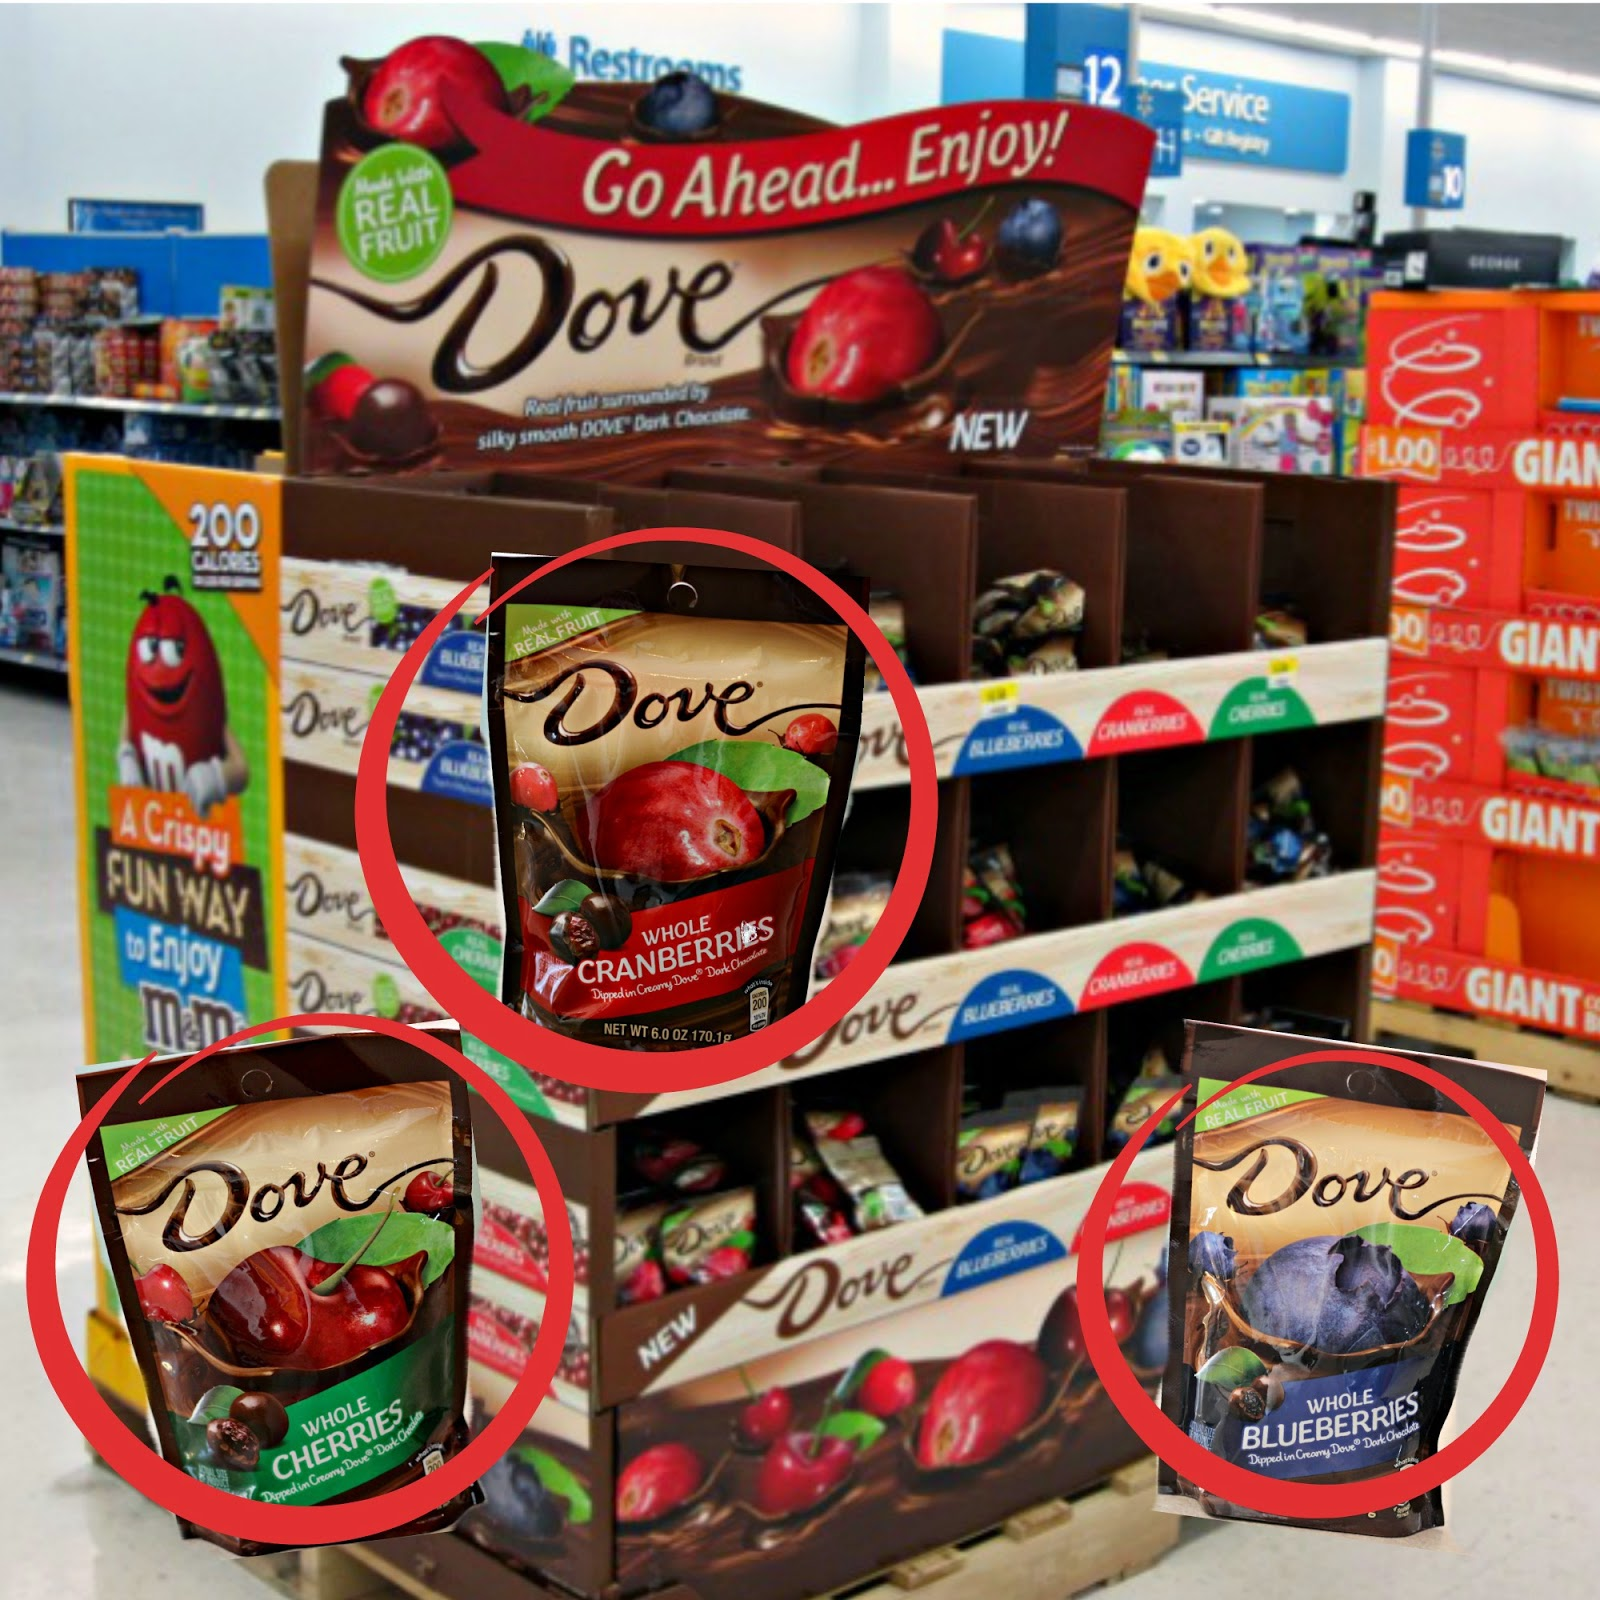 Wlamart instore image for DOVE fruit